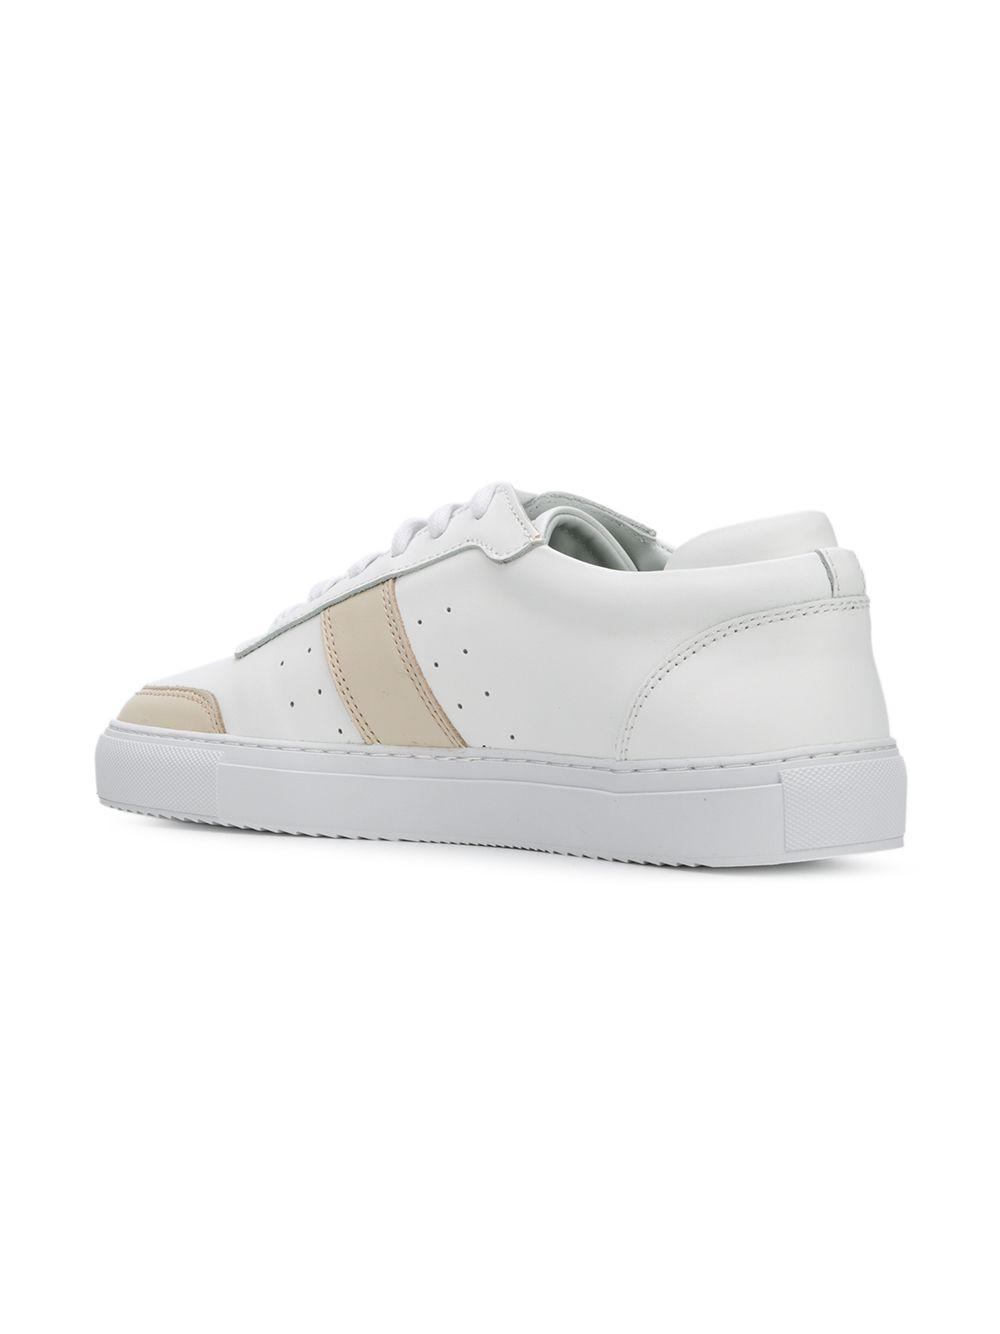 huge discount 1d3a9 4b17d axel-arigato-White-Low-top-Sneakers.jpeg